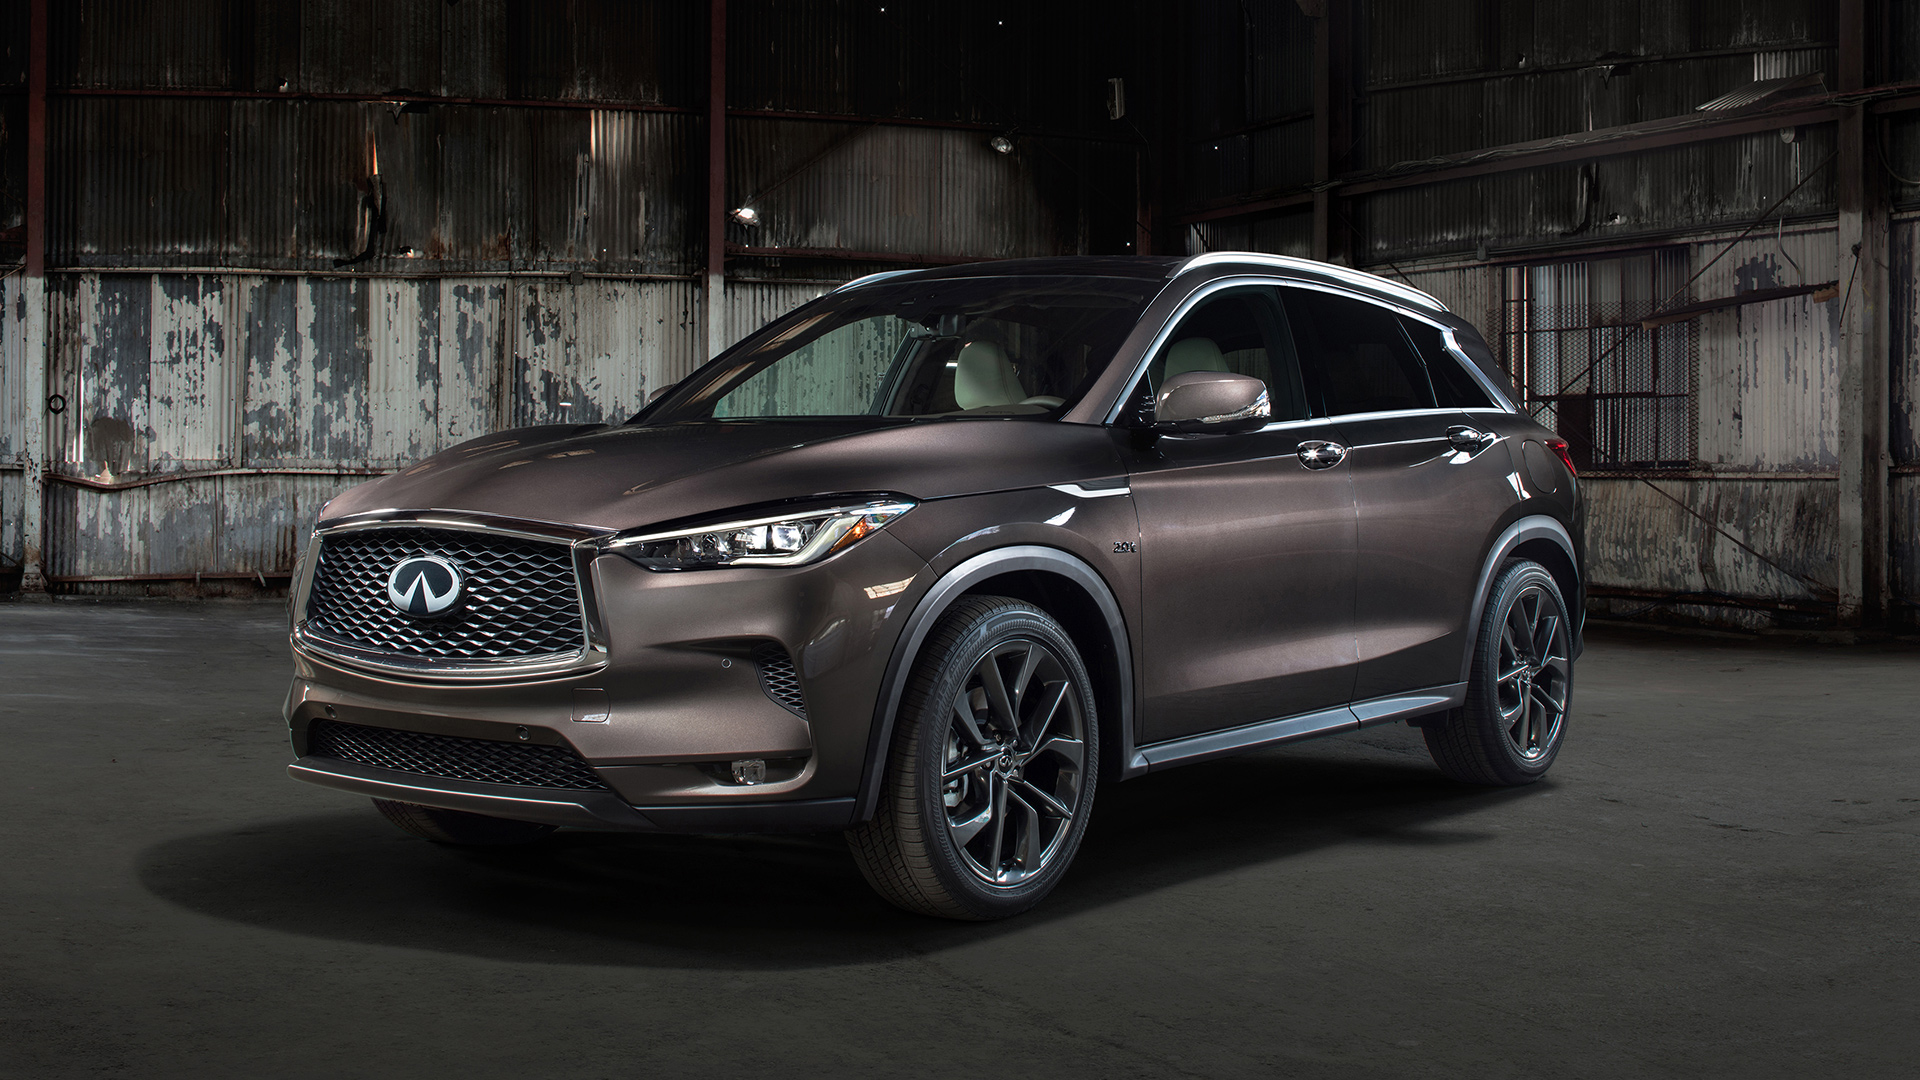 New Used Infiniti Cars For Sale Autotrader